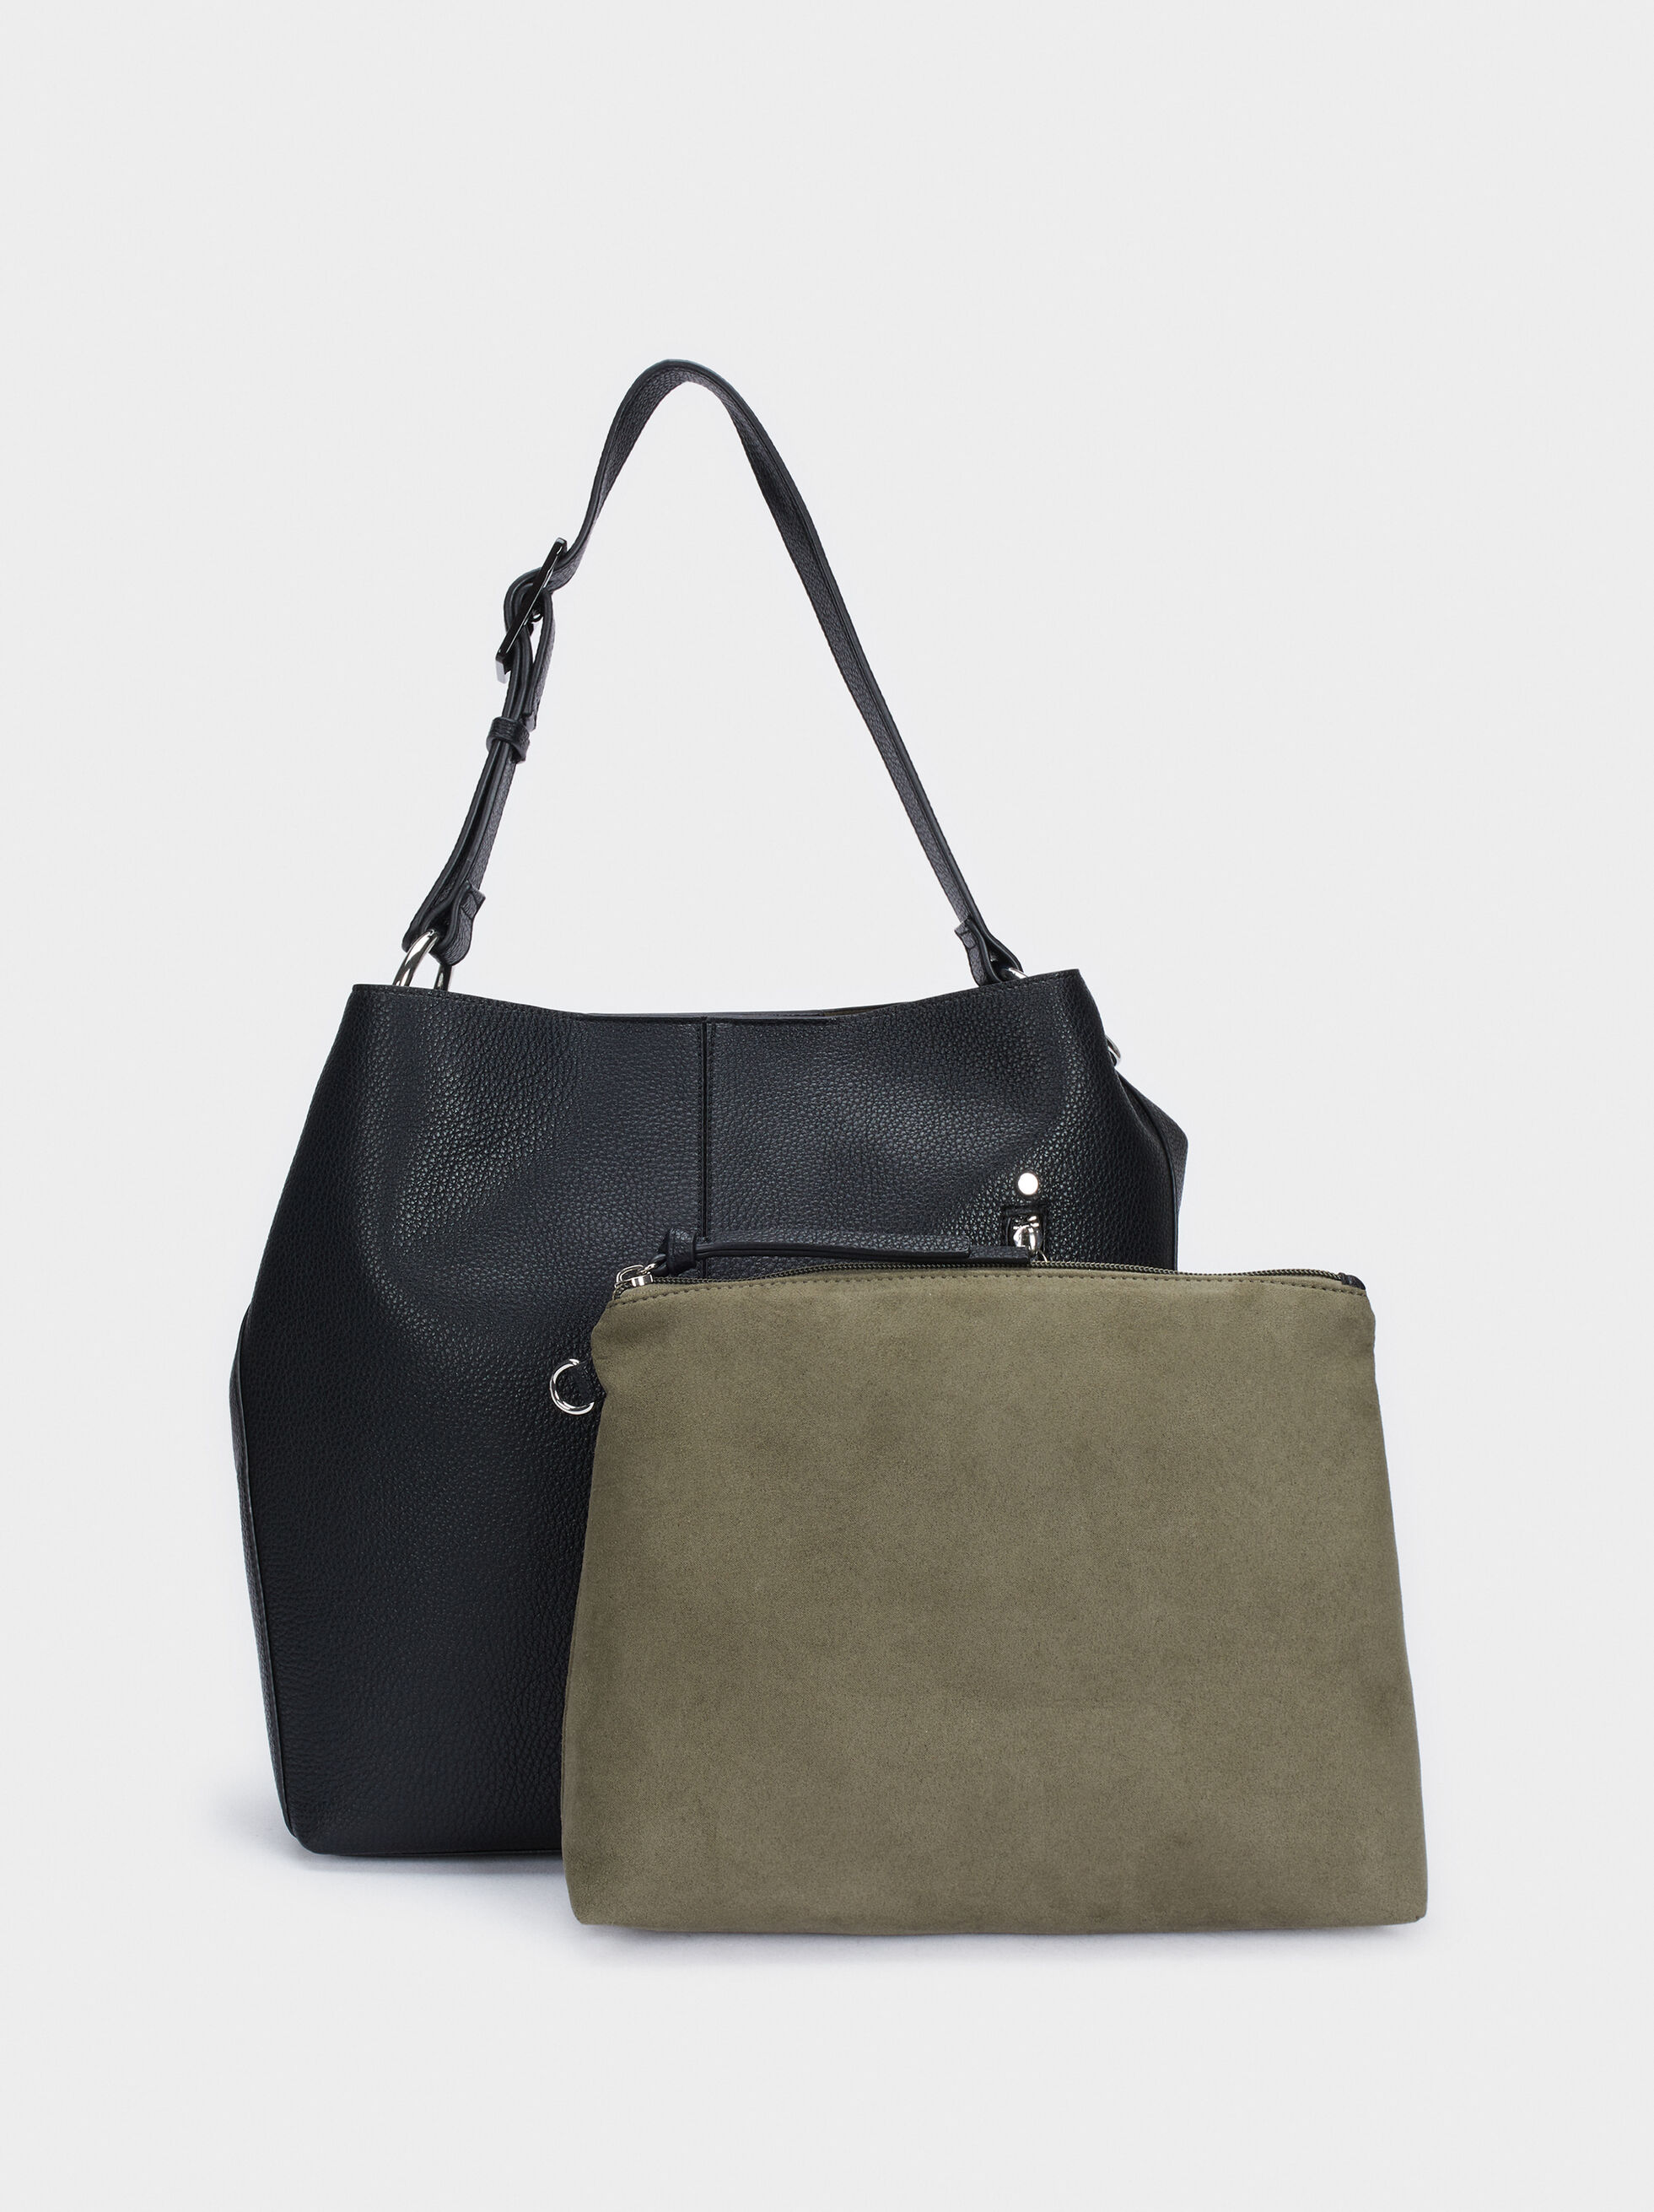 Shoulder Bag With Exterior Pocket, Black, hi-res